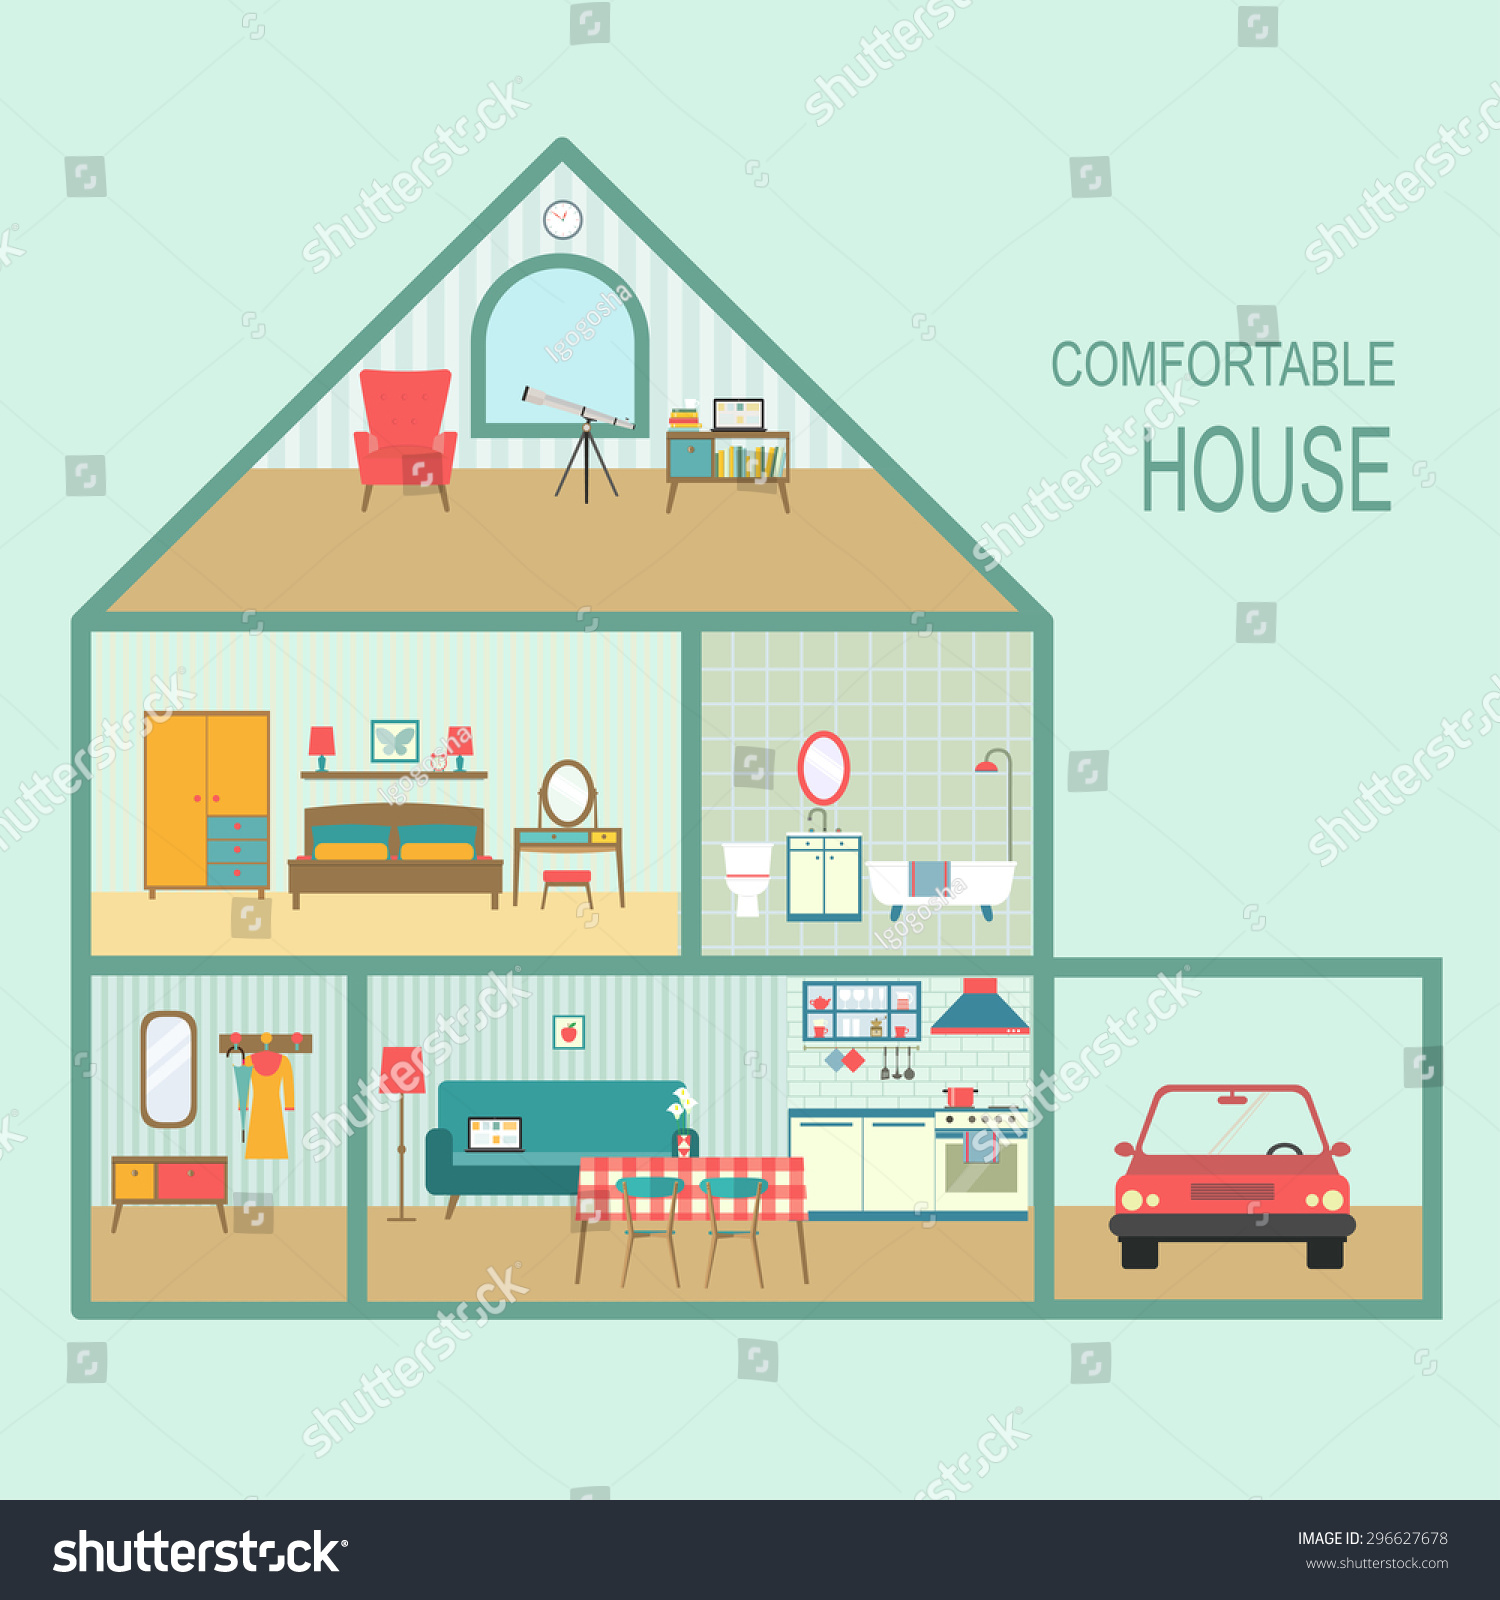 Flat comfortable house section interior living stock vector 296627678 shutterstock - Small houses with attic and garage ...